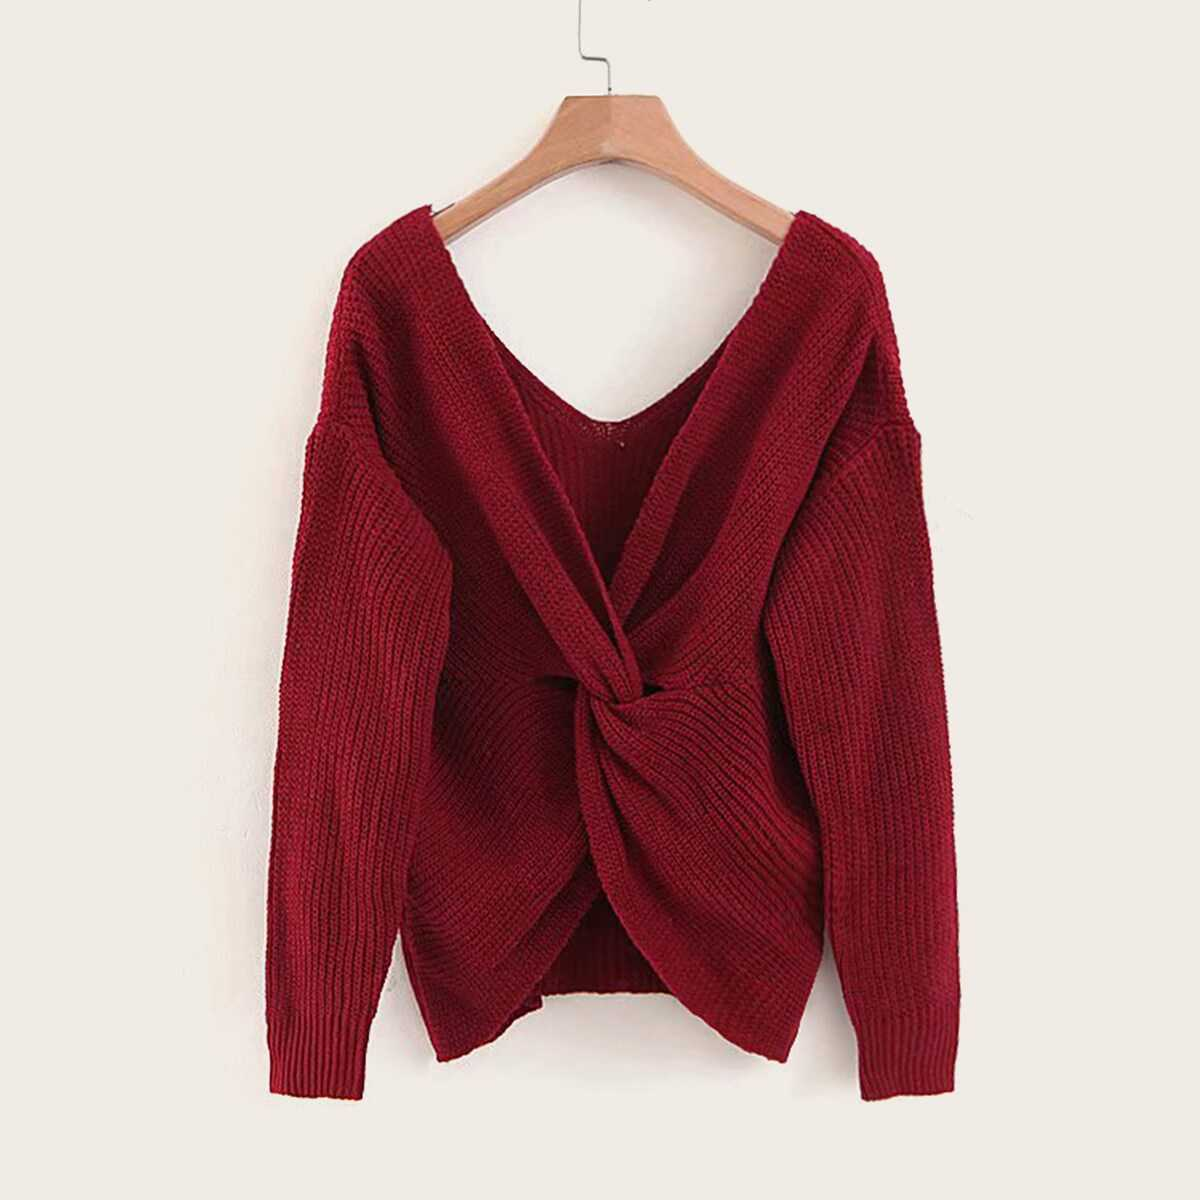 Twist Front Drop Shoulder Sweater in Burgundy by ROMWE on GOOFASH